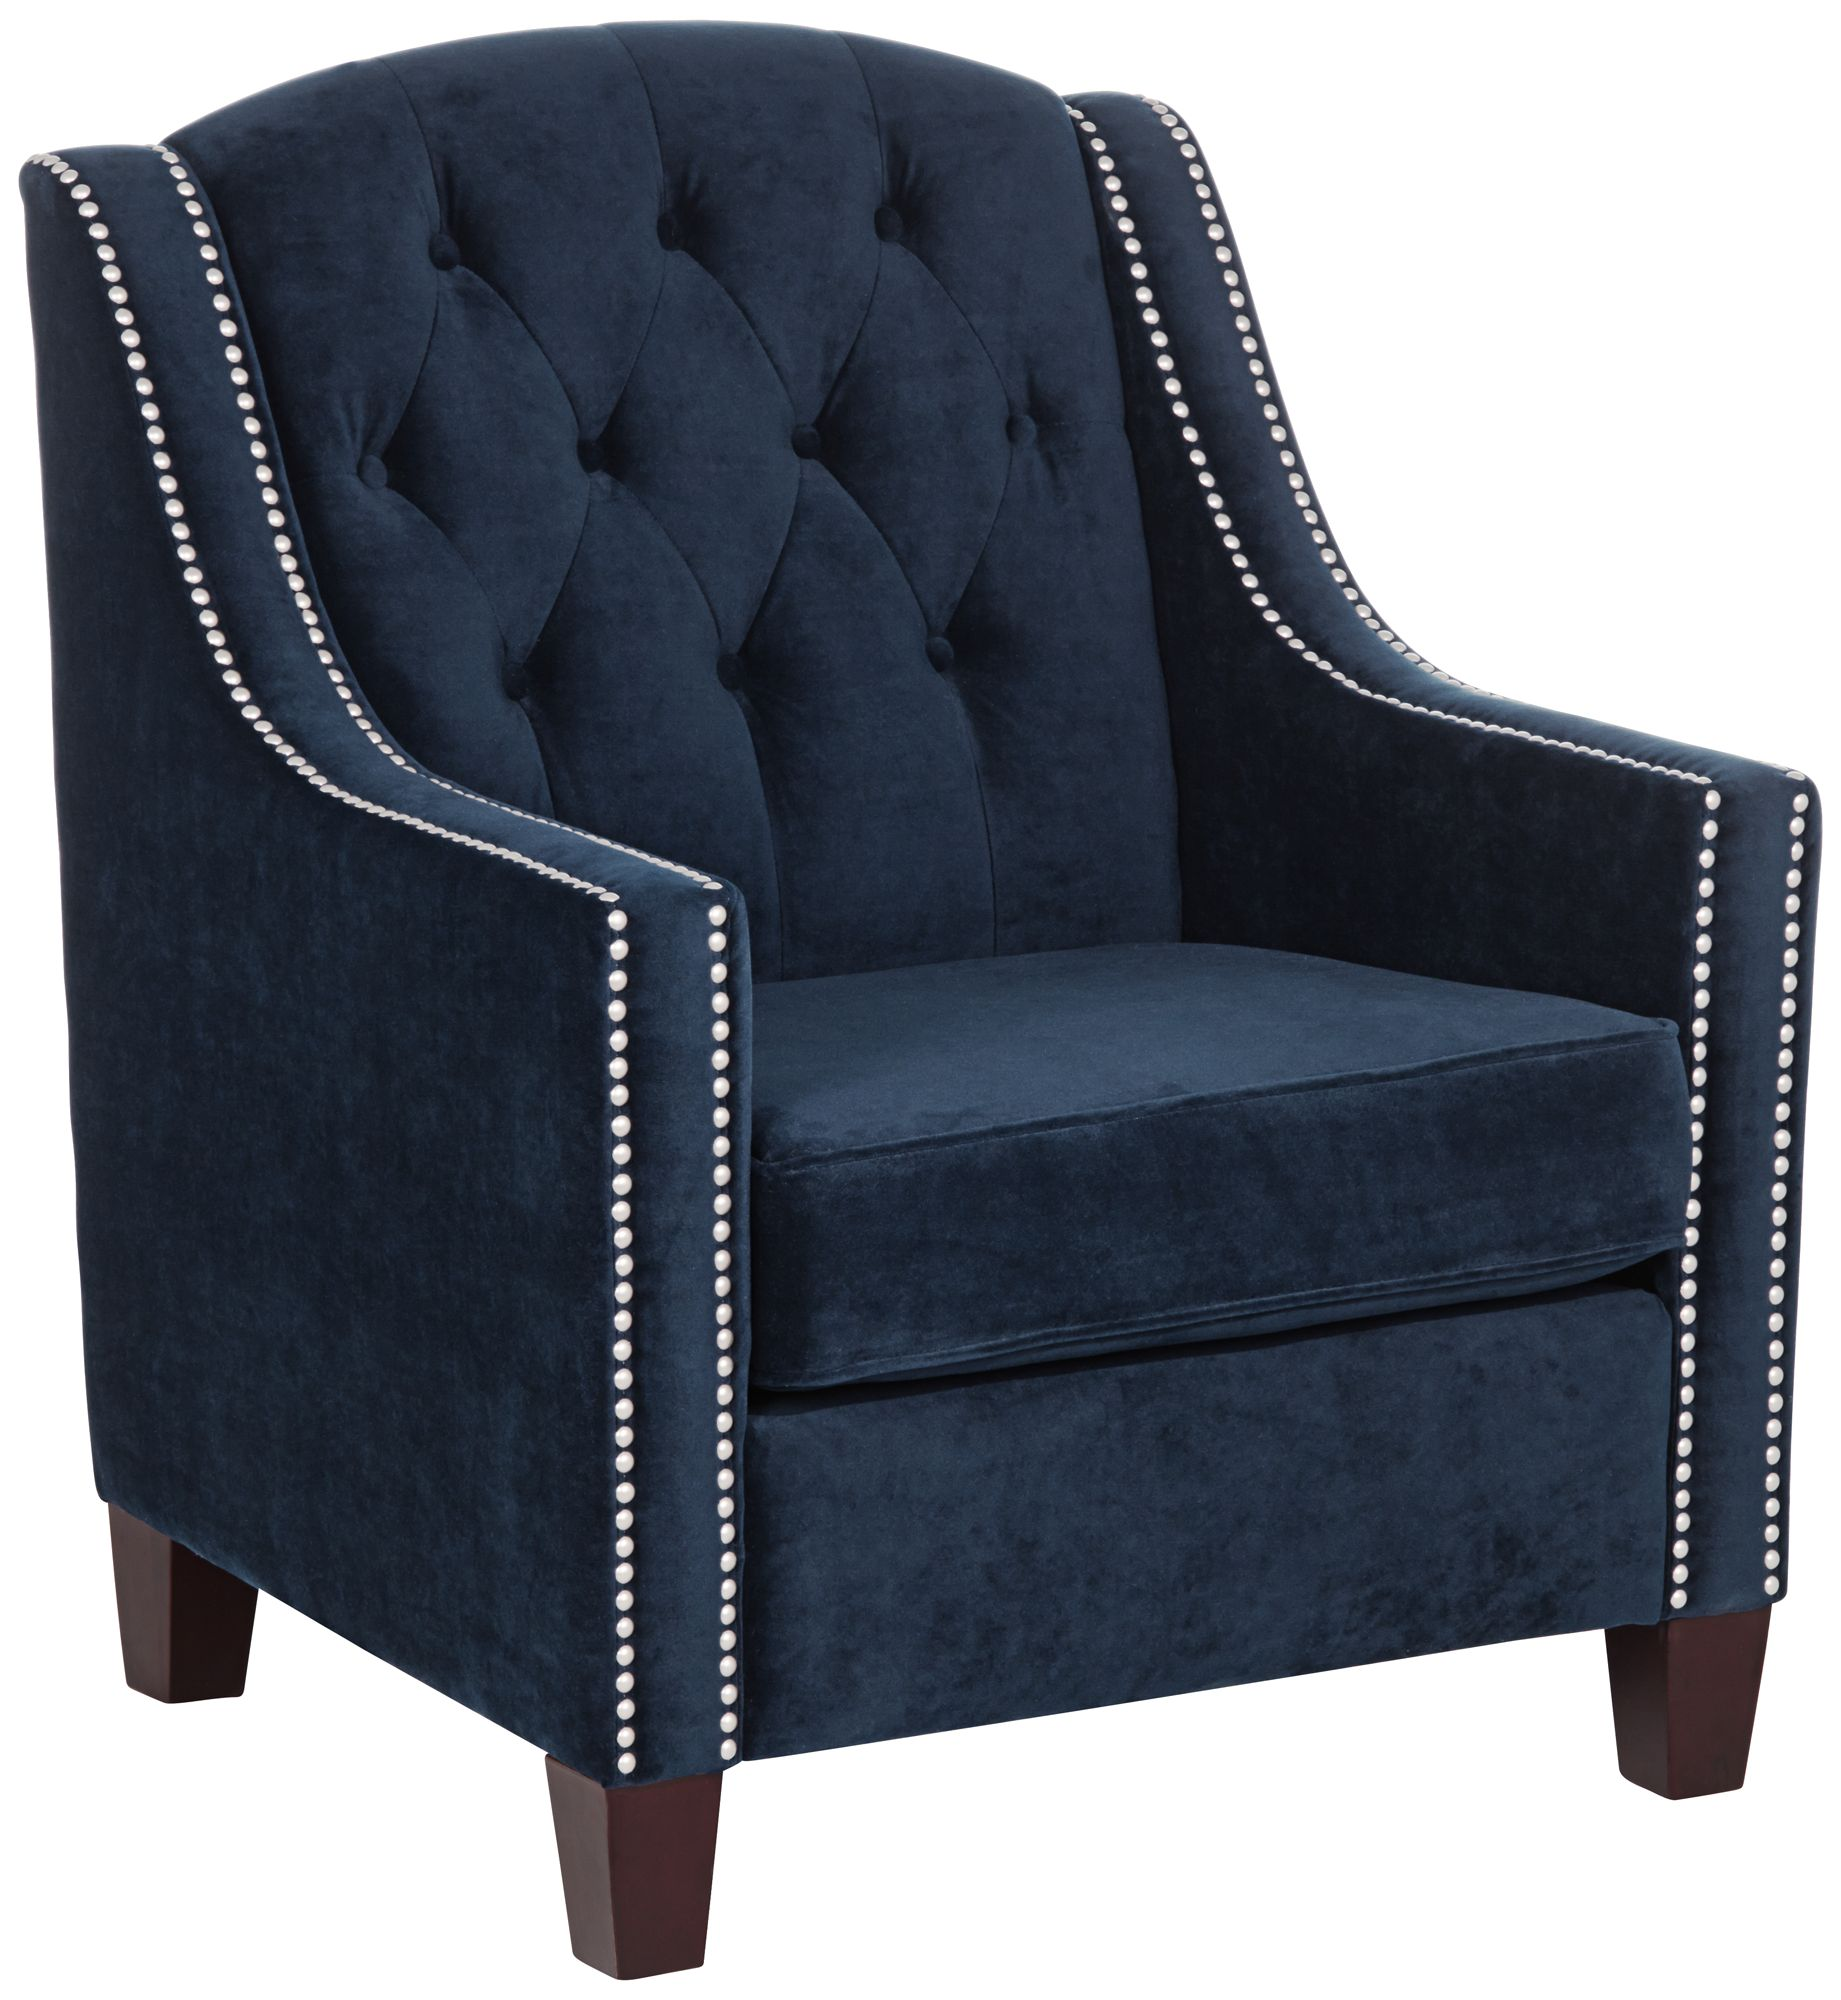 Tivoli Bella Ink Blue Velvet Tufted Armchair